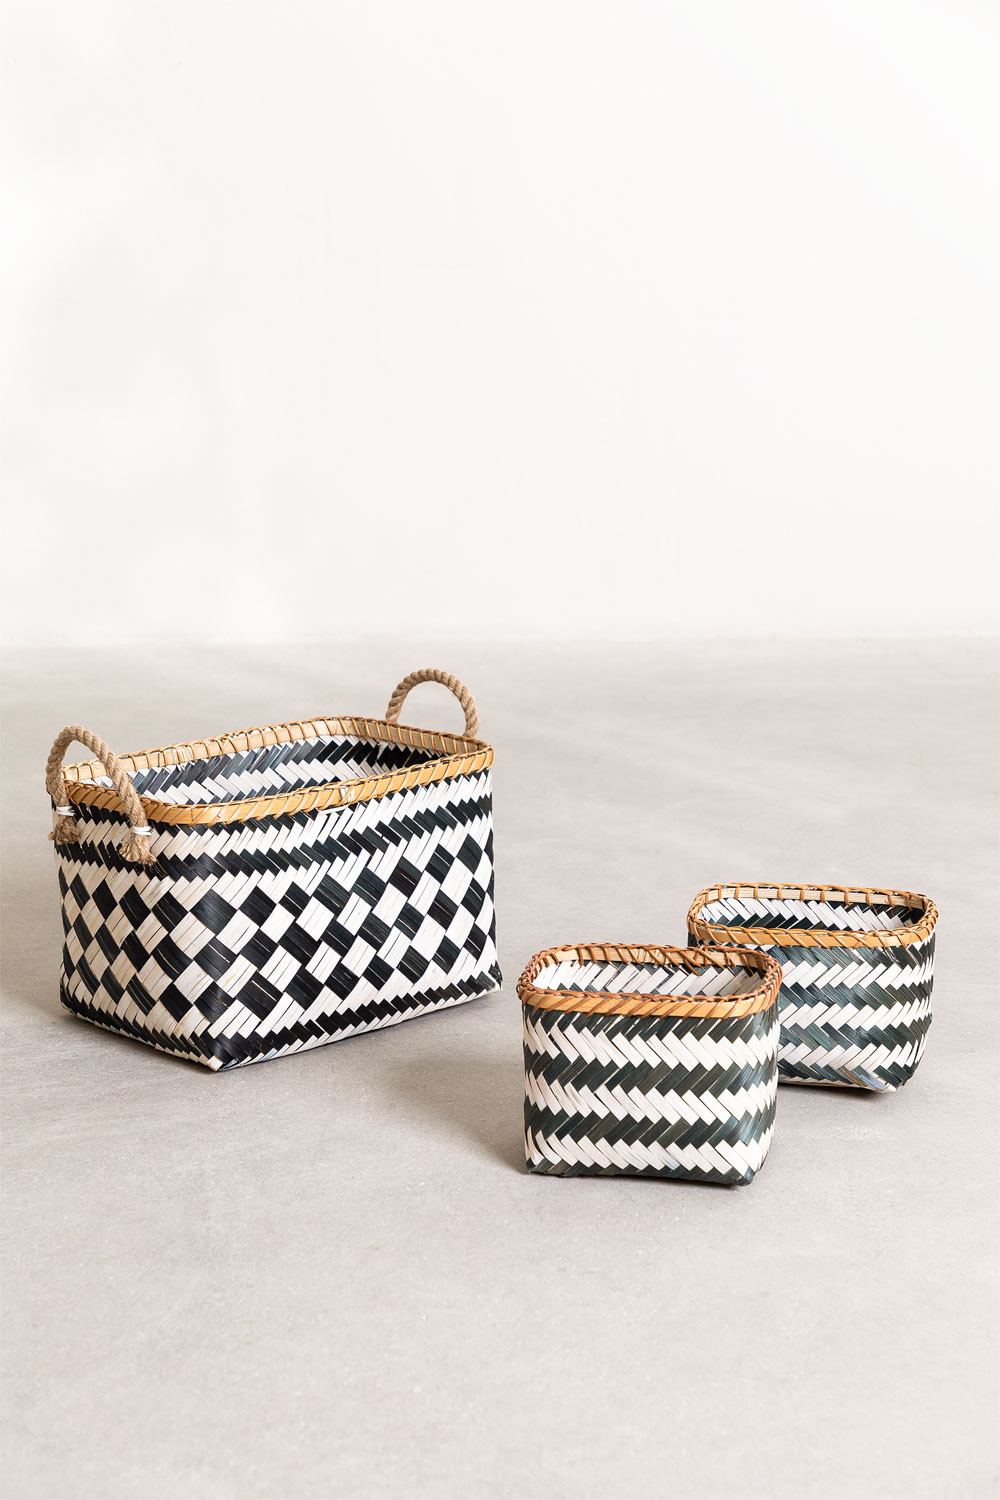 Set of 3 Thais Baskets, gallery image 1